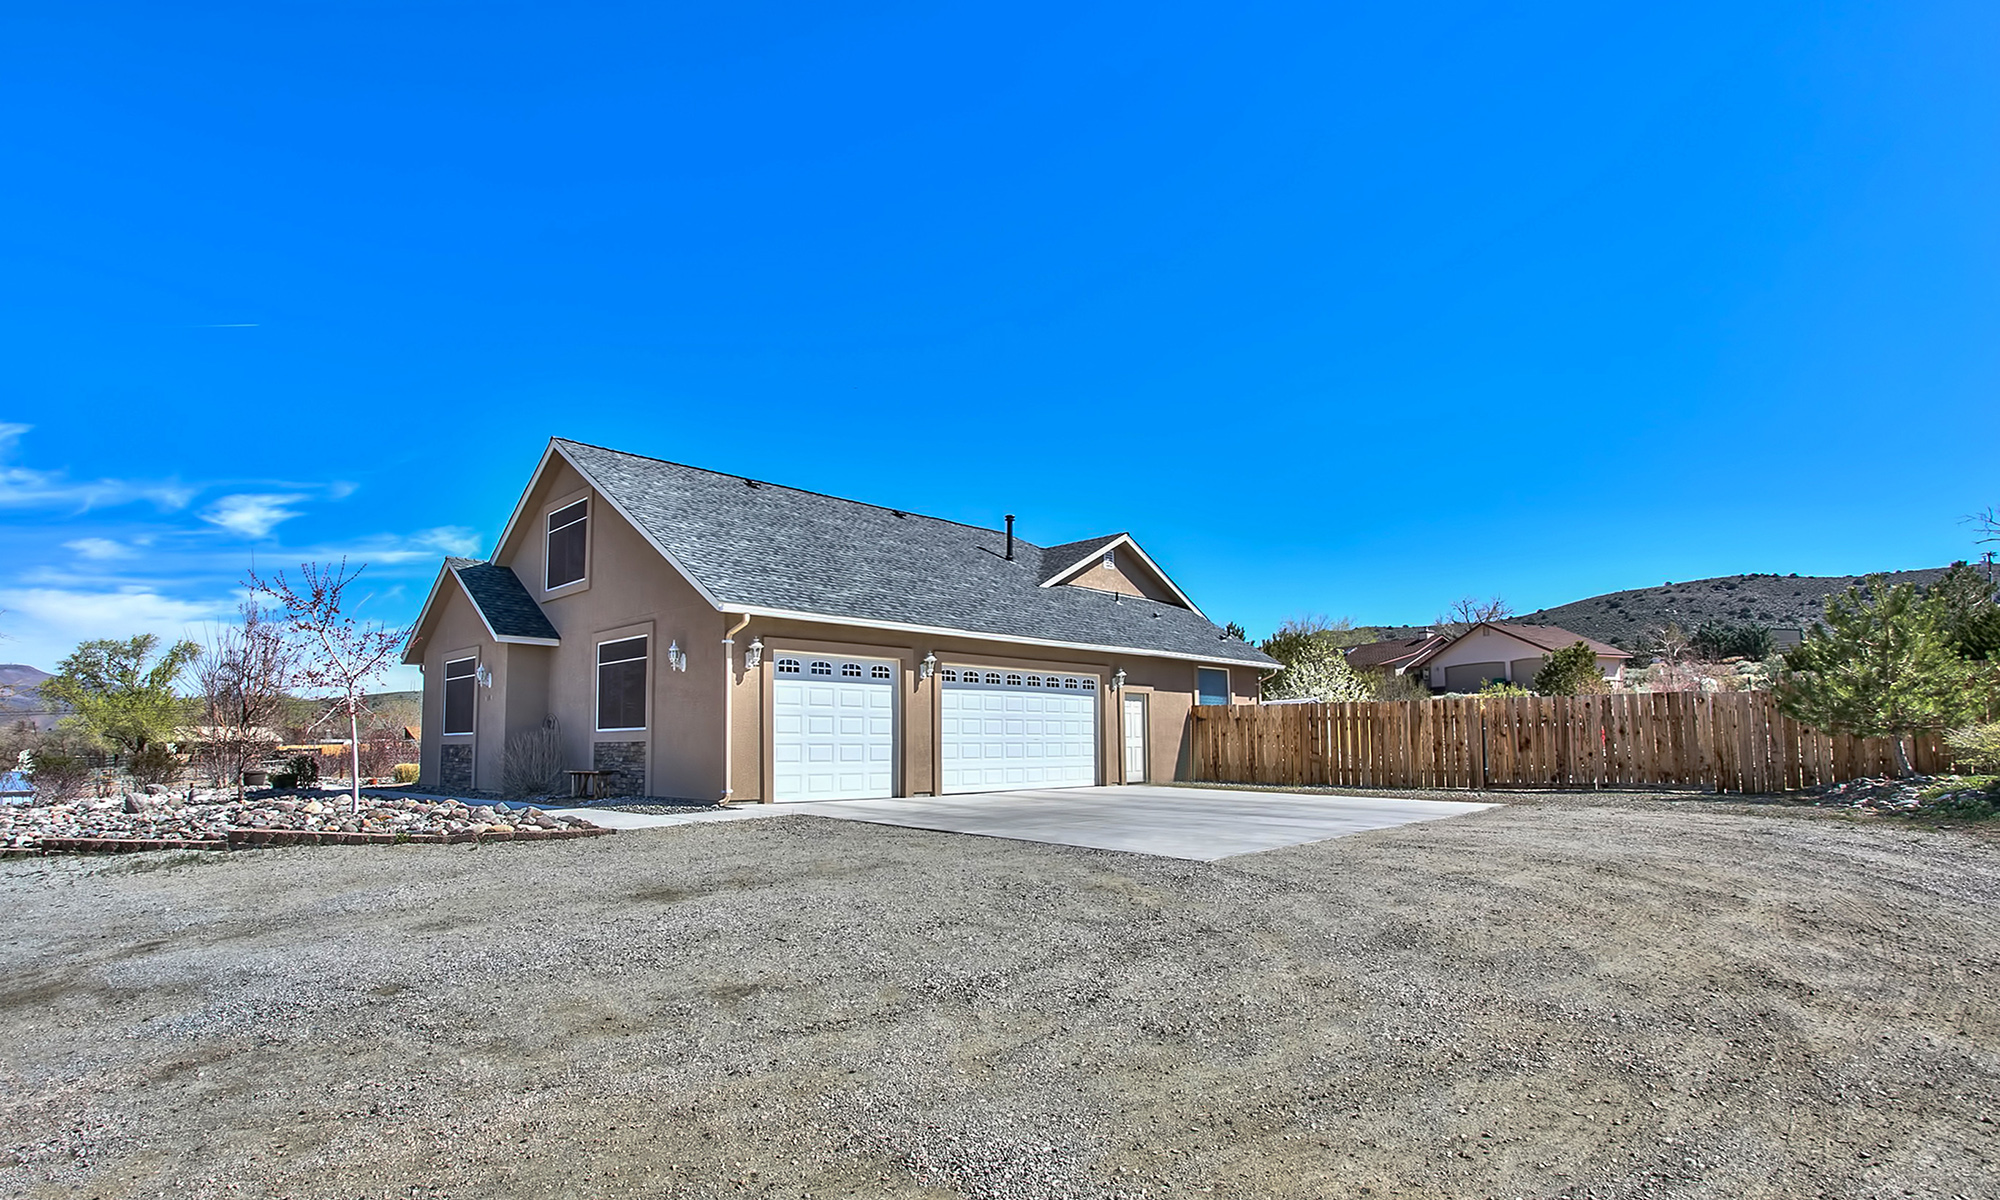 Single Family Home for Sale at 1381 South Deer Run Road Carson City, Nevada 89701 United States